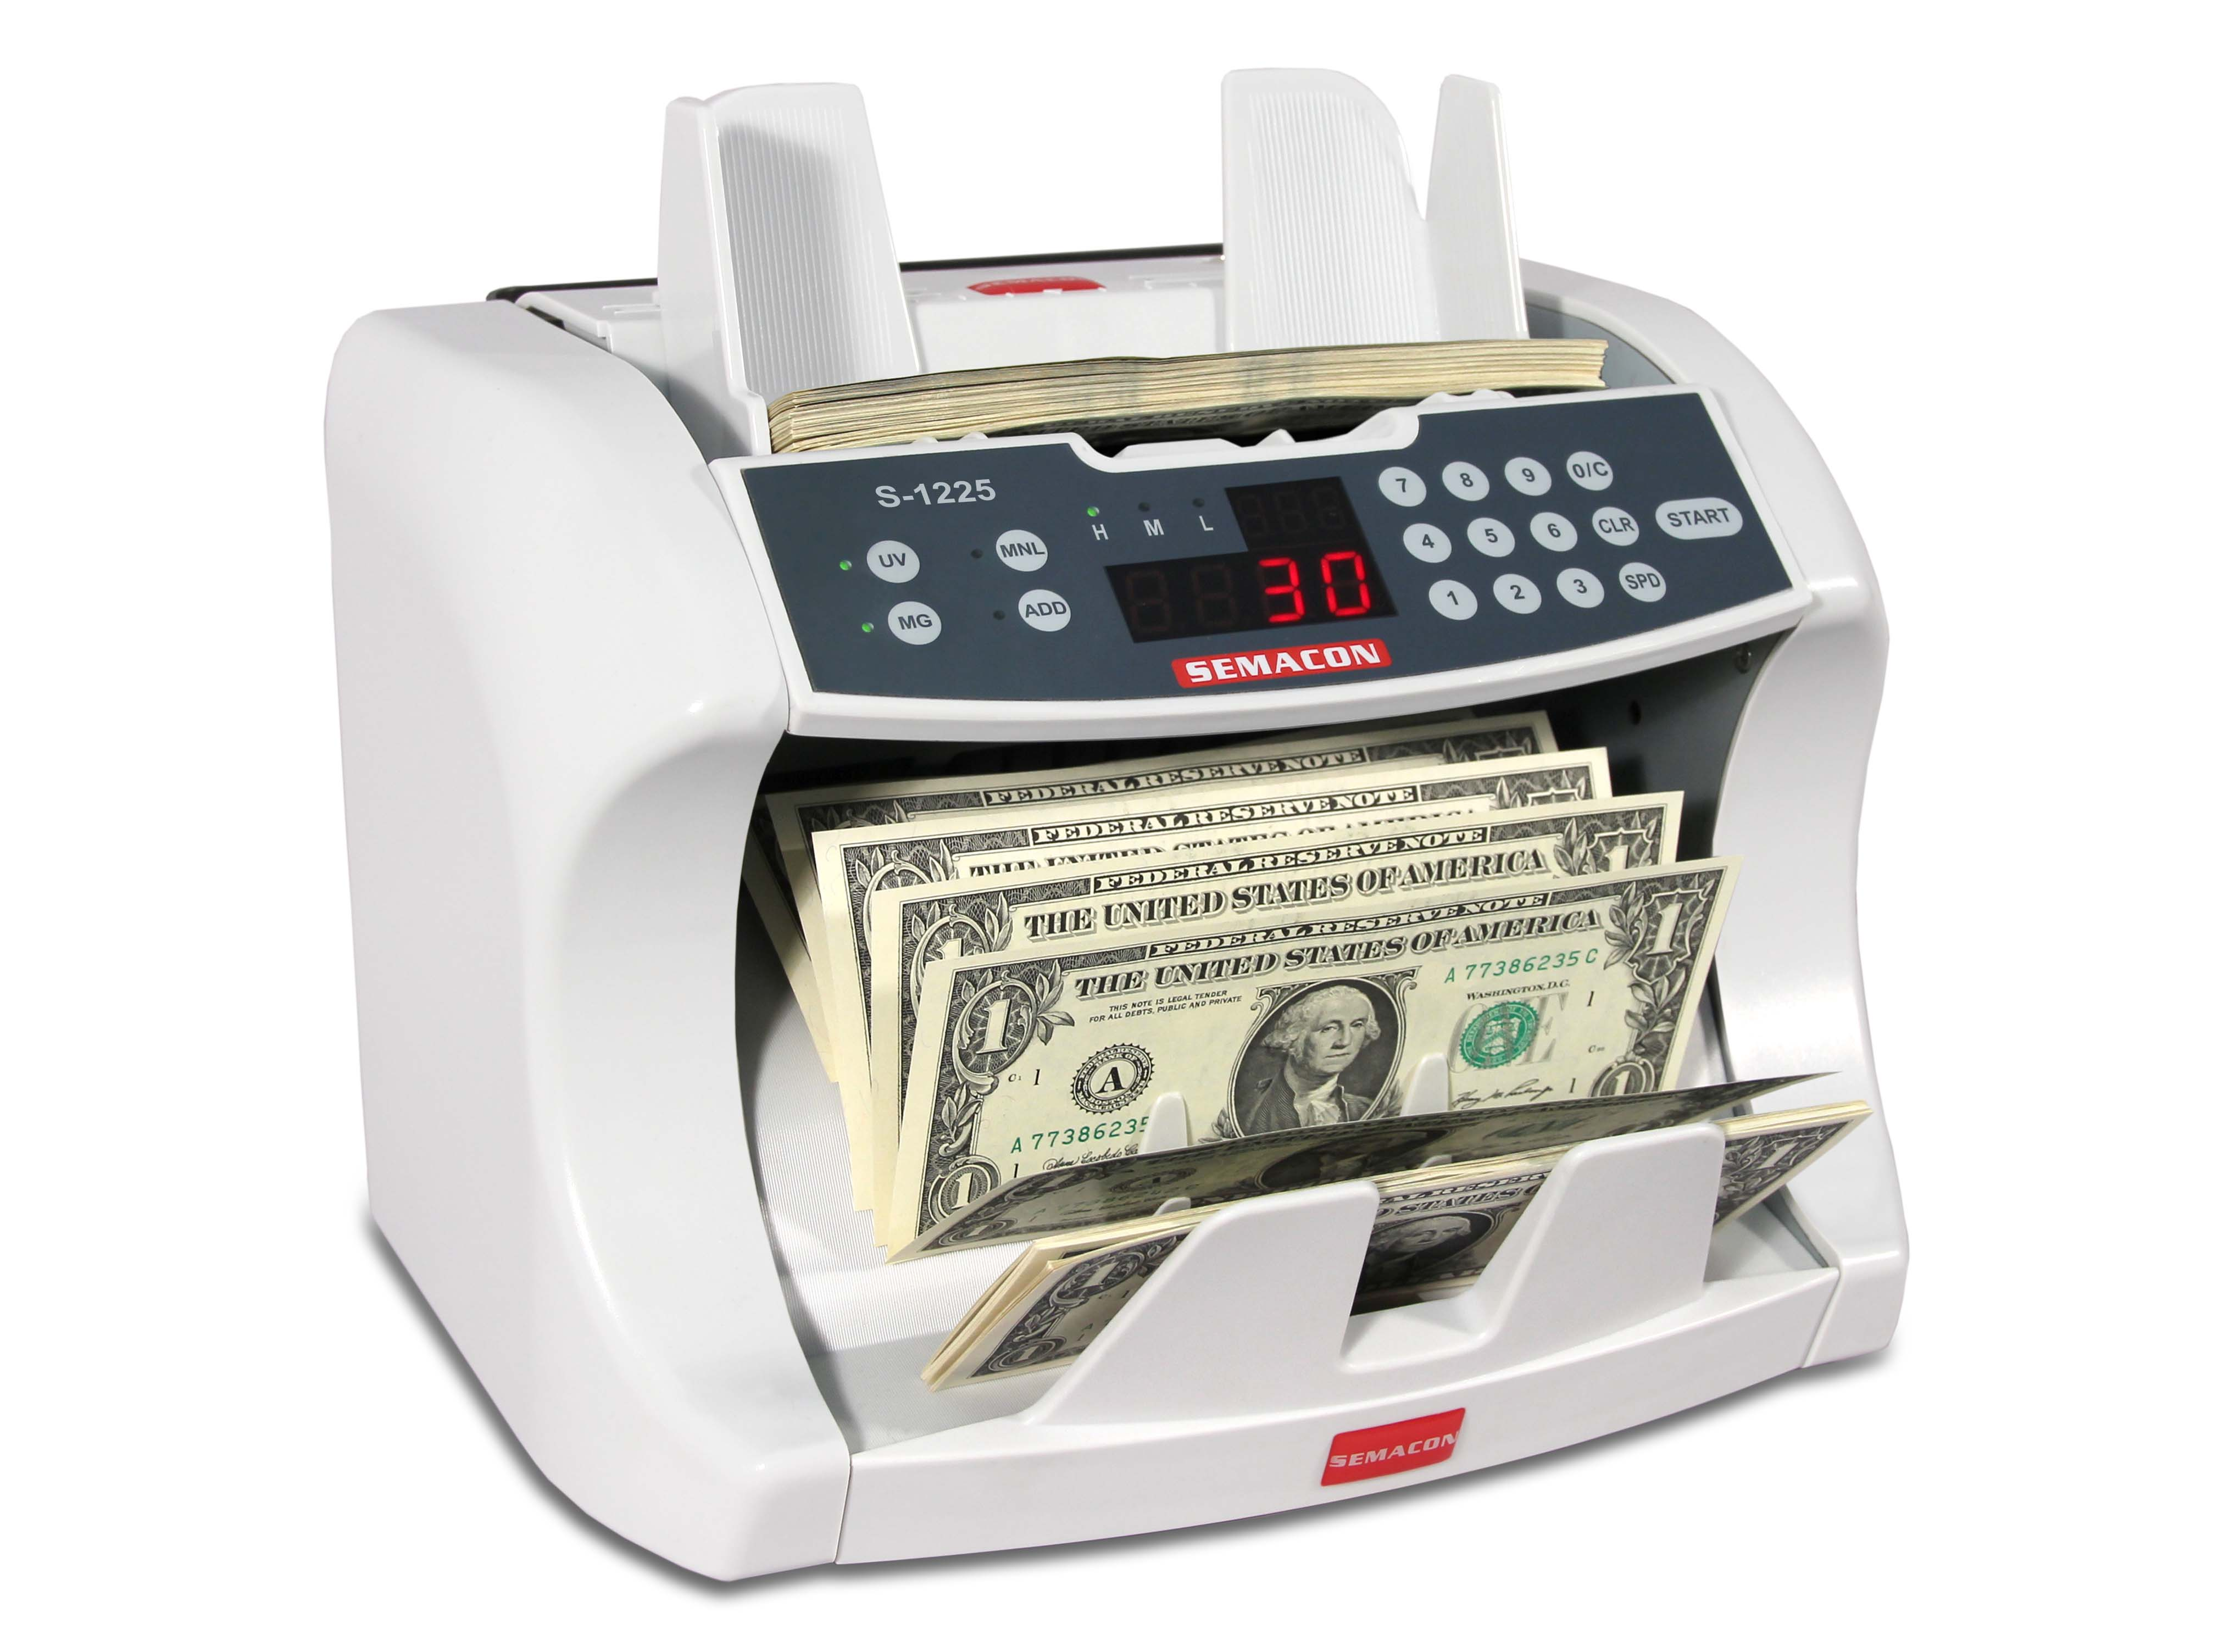 Semacon S-1225 Currency Counter w/ UV & MG Counterfeit Detection